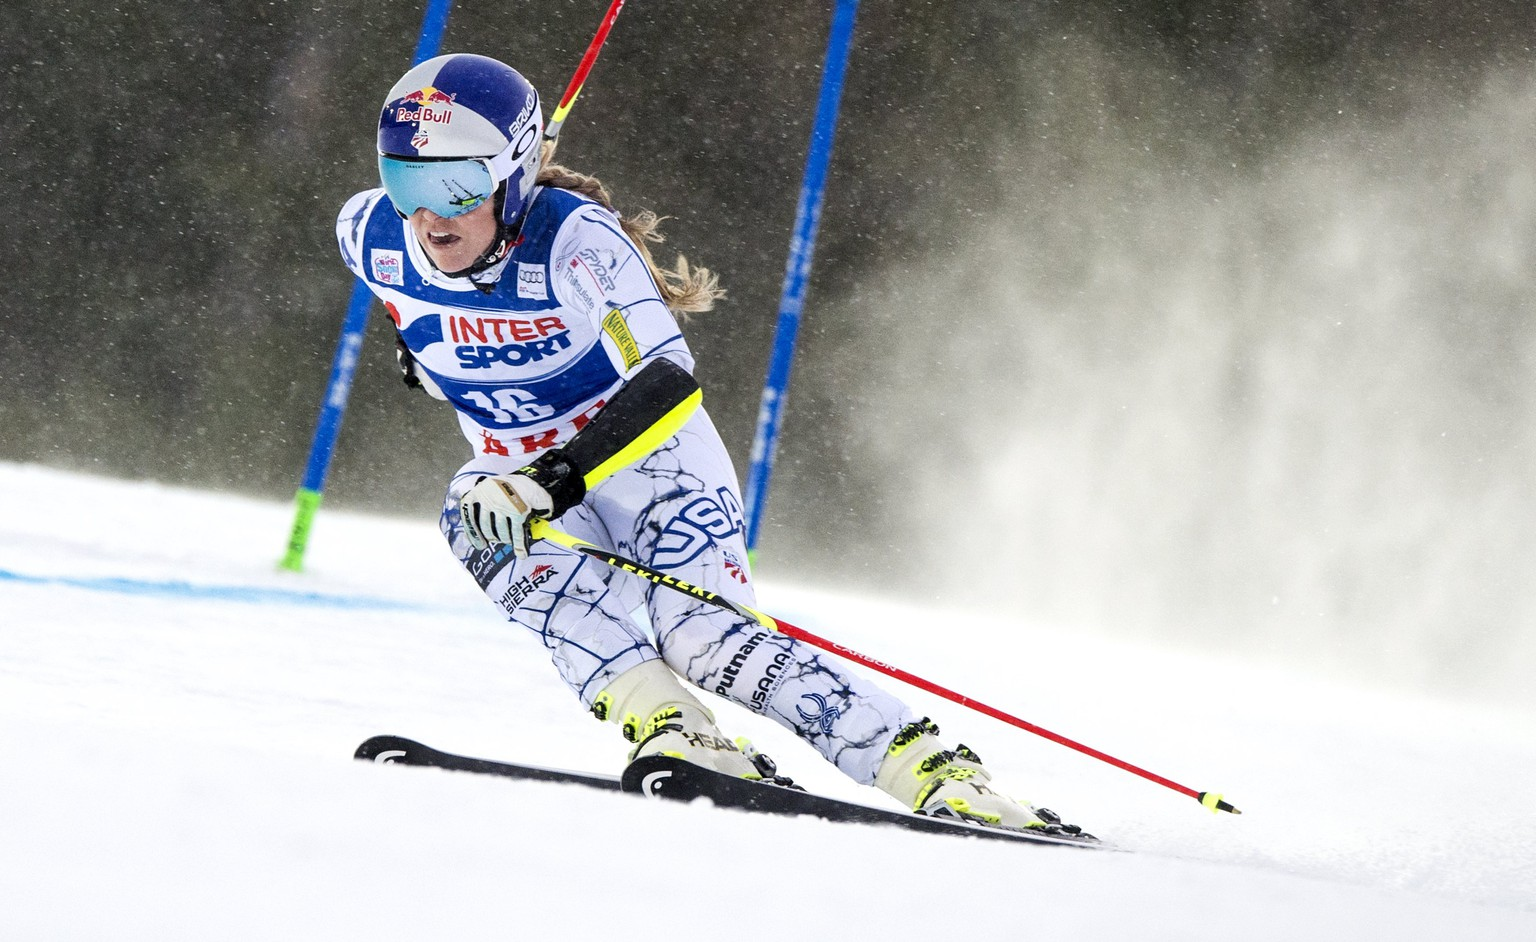 Lindsey Vonn of the U.S. during the first run of the women's World Cup giant slalom in Are, Sweden, December 12, 2015.   REUTERS/Pontus Lundahl/TT News Agency    ATTENTION EDITORS - THIS IMAGE WAS PROVIDED BY A THIRD PARTY. FOR EDITORIAL USE ONLY. NOT FOR SALE FOR MARKETING OR ADVERTISING CAMPAIGNS. THIS PICTURE IS DISTRIBUTED EXACTLY AS RECEIVED BY REUTERS, AS A SERVICE TO CLIENTS. SWEDEN OUT. NO COMMERCIAL OR EDITORIAL SALES IN SWEDEN. NO COMMERCIAL SALES.